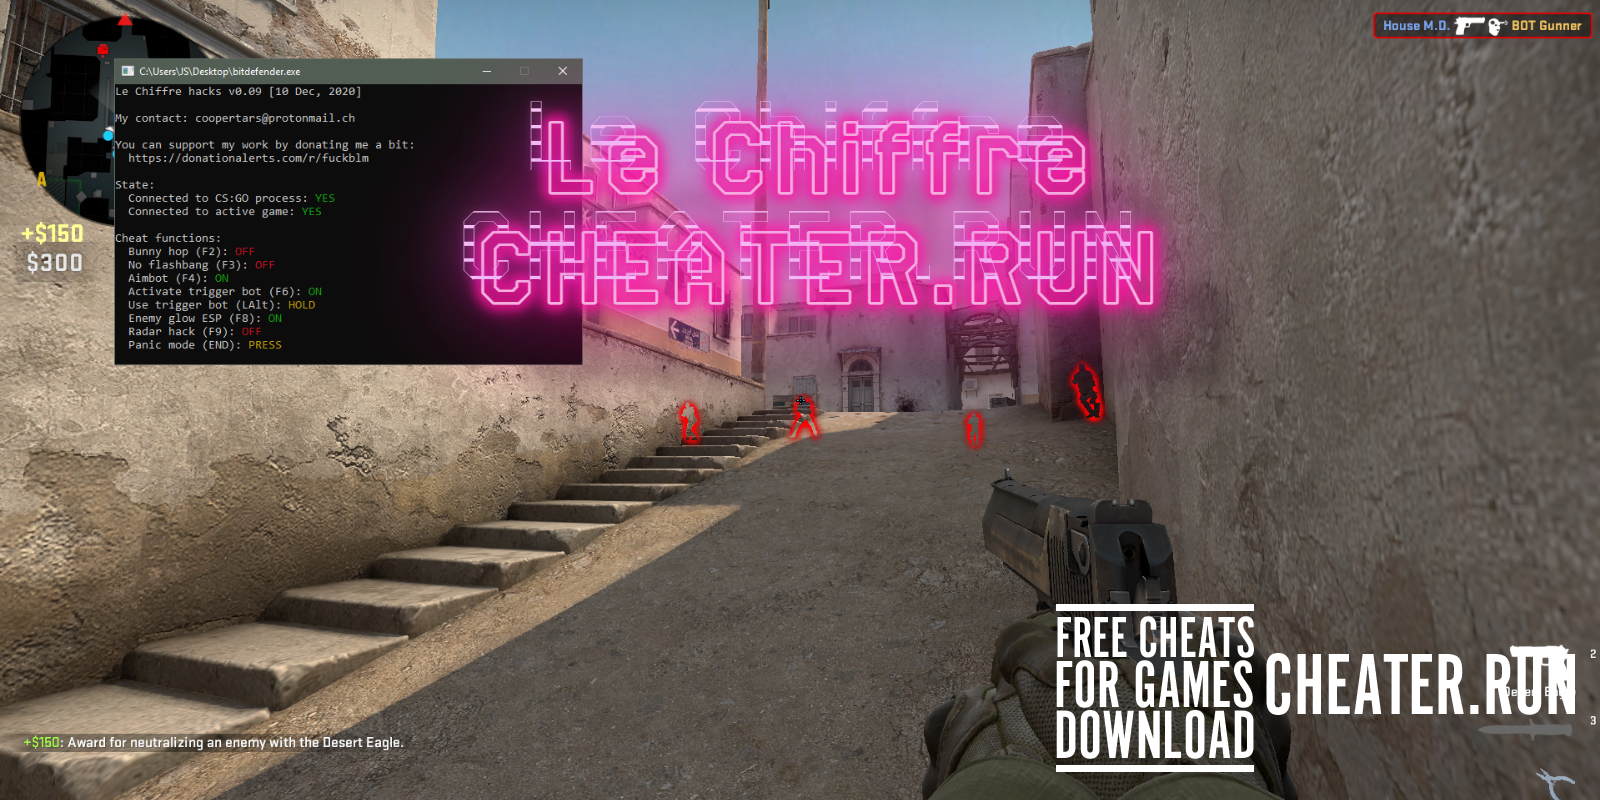 Le Chiffre - ESP, TriggerBot, Radar hack, Panic mode - Download free cheats for CS GO. You can activate such functions as: ESP, TriggerBot, Radar hack, Panic mode, etc. See enemies through walls, display enemies on standard radar, use automatic targeting on player models, a button to quickly close the hack, and much more. - Free Cheats for Games